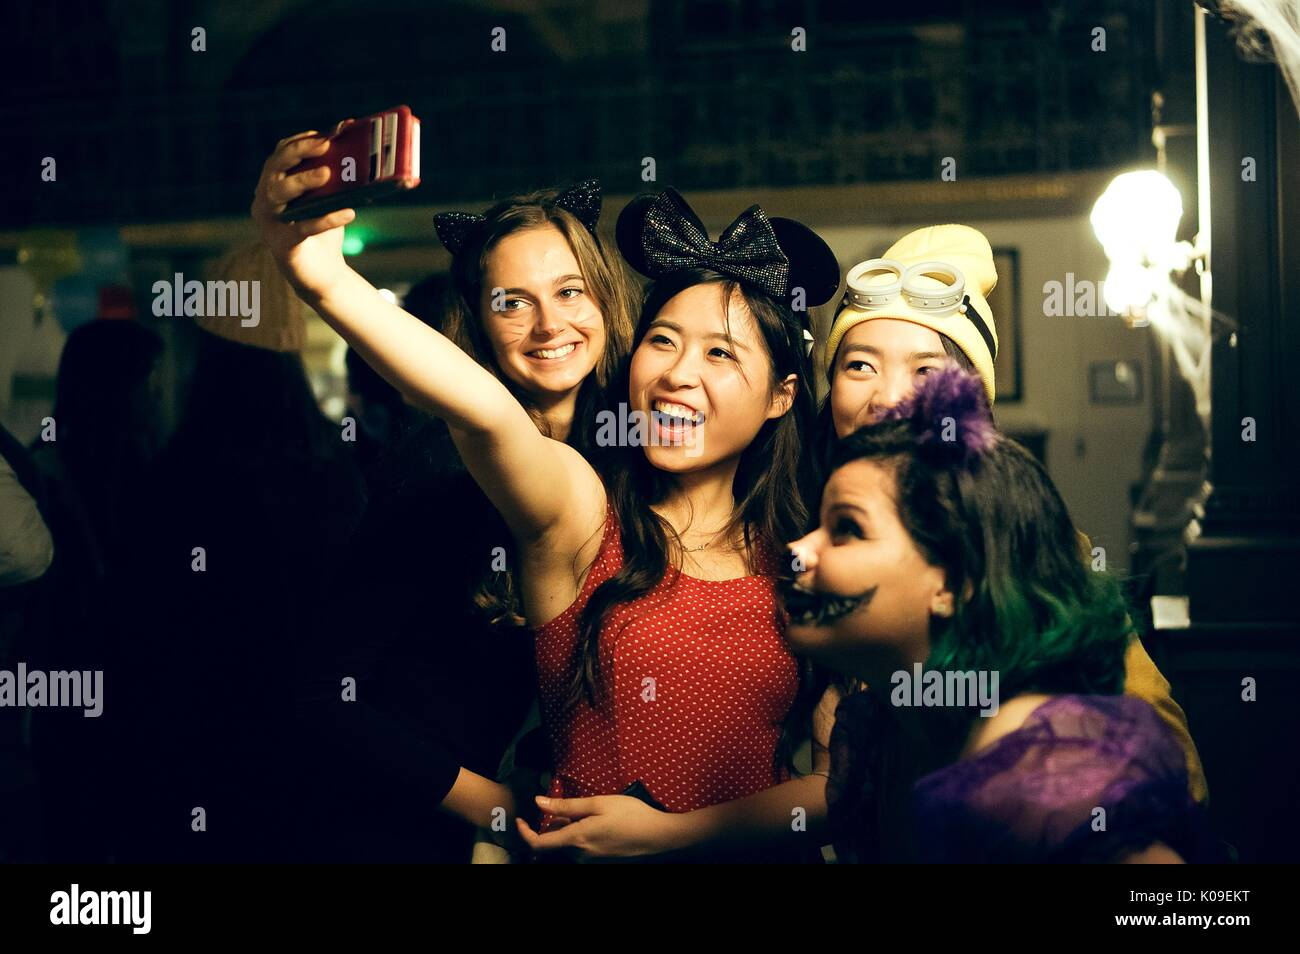 A group of four female college students dressed in costumes; one student as Minnie Mouse holding a phone taking a selfie another student dressed in the ...  sc 1 st  Alamy & A group of four female college students dressed in costumes; one ...